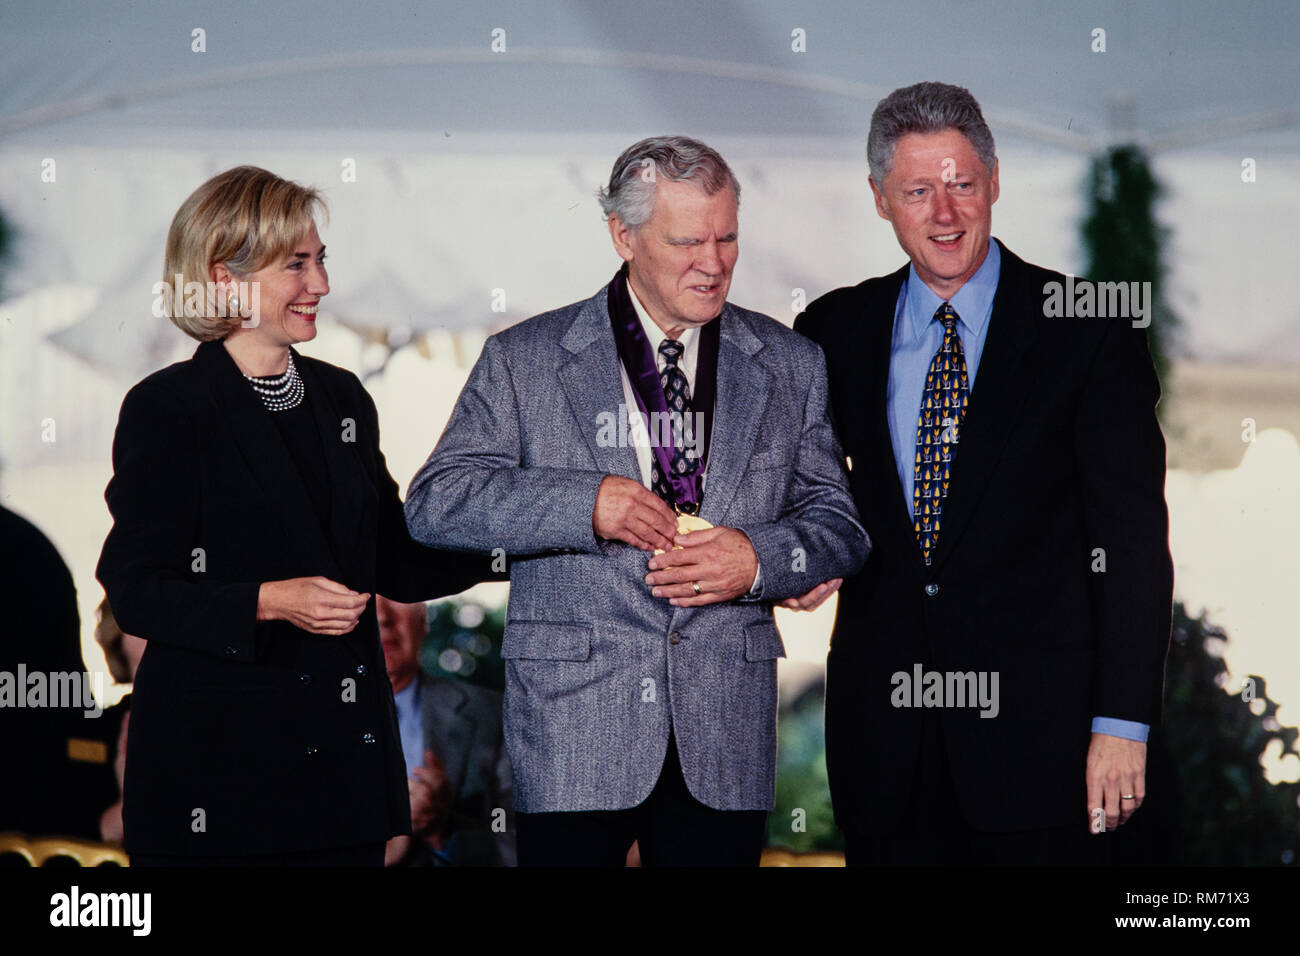 Mexican-American writer and literary critic Luis Leal is presented the National Medal of Arts by President Bill Clinton and First Lady Hillary Clinton during a ceremony on the South Lawn of the White House September 29, 1997 in Washington, DC. - Stock Image